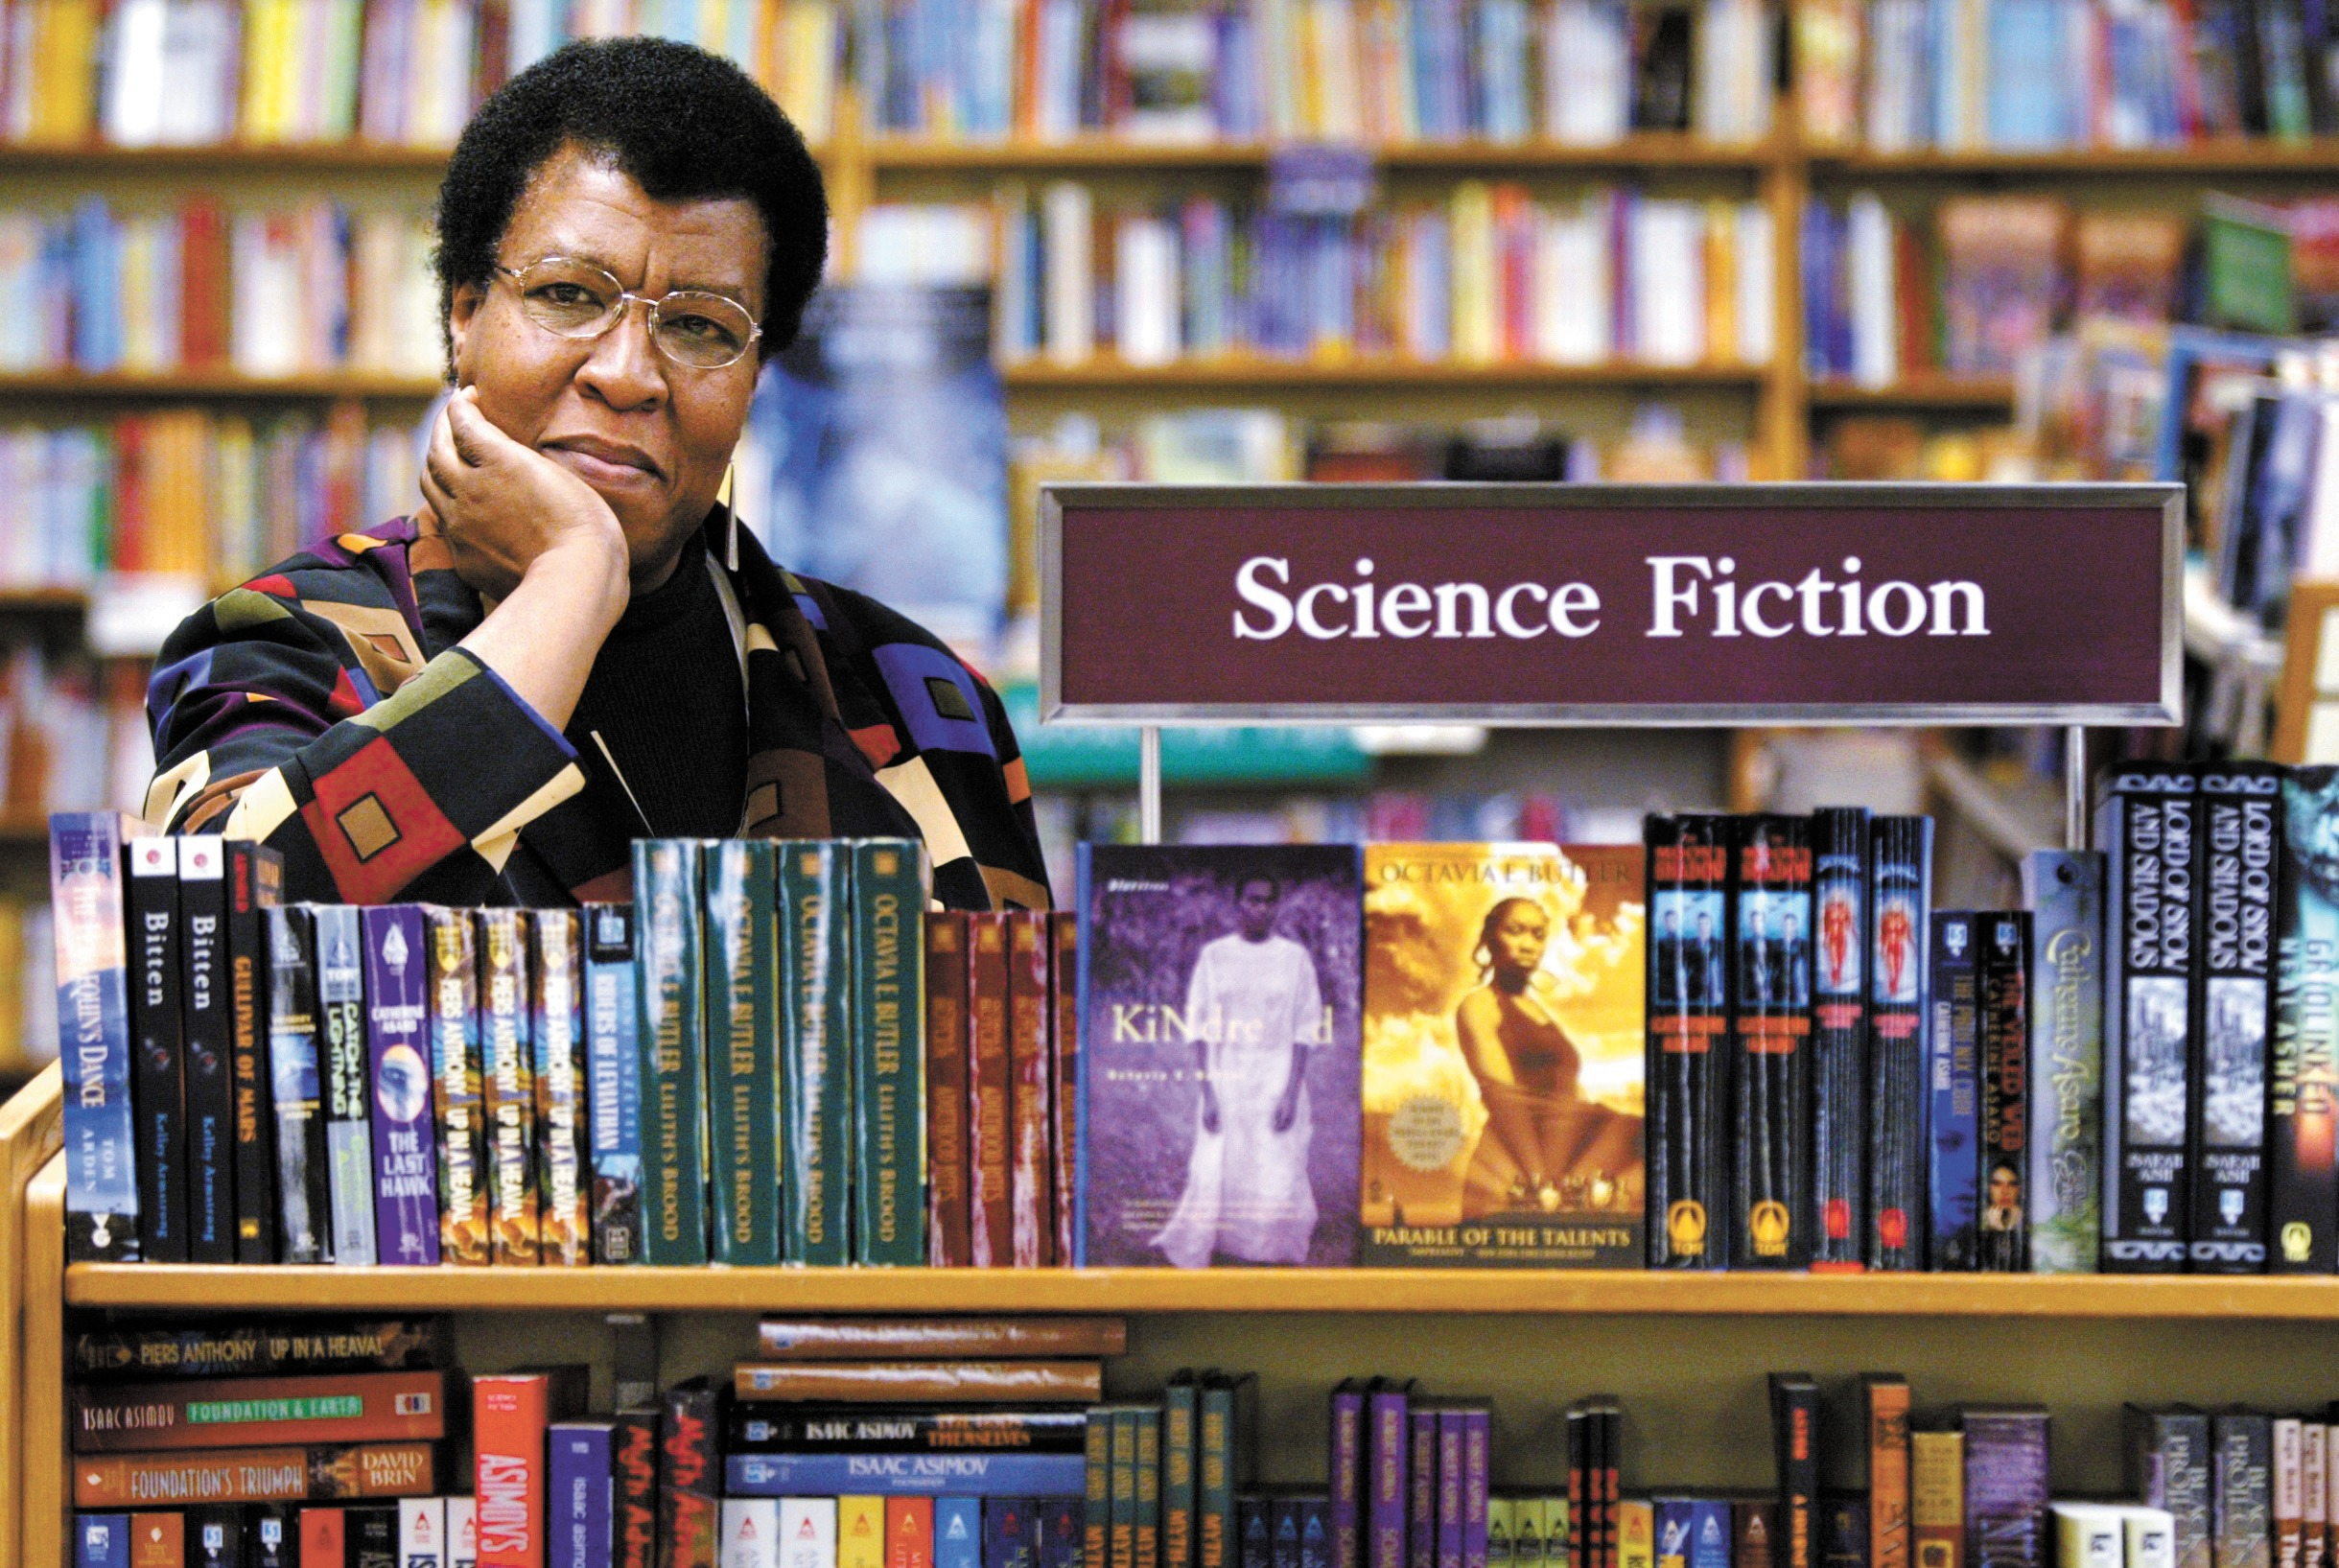 Octavia Butler poses for a photograph near some of her novels at University Book Store in Seattle, Wash., on Feb. 4, 2004.